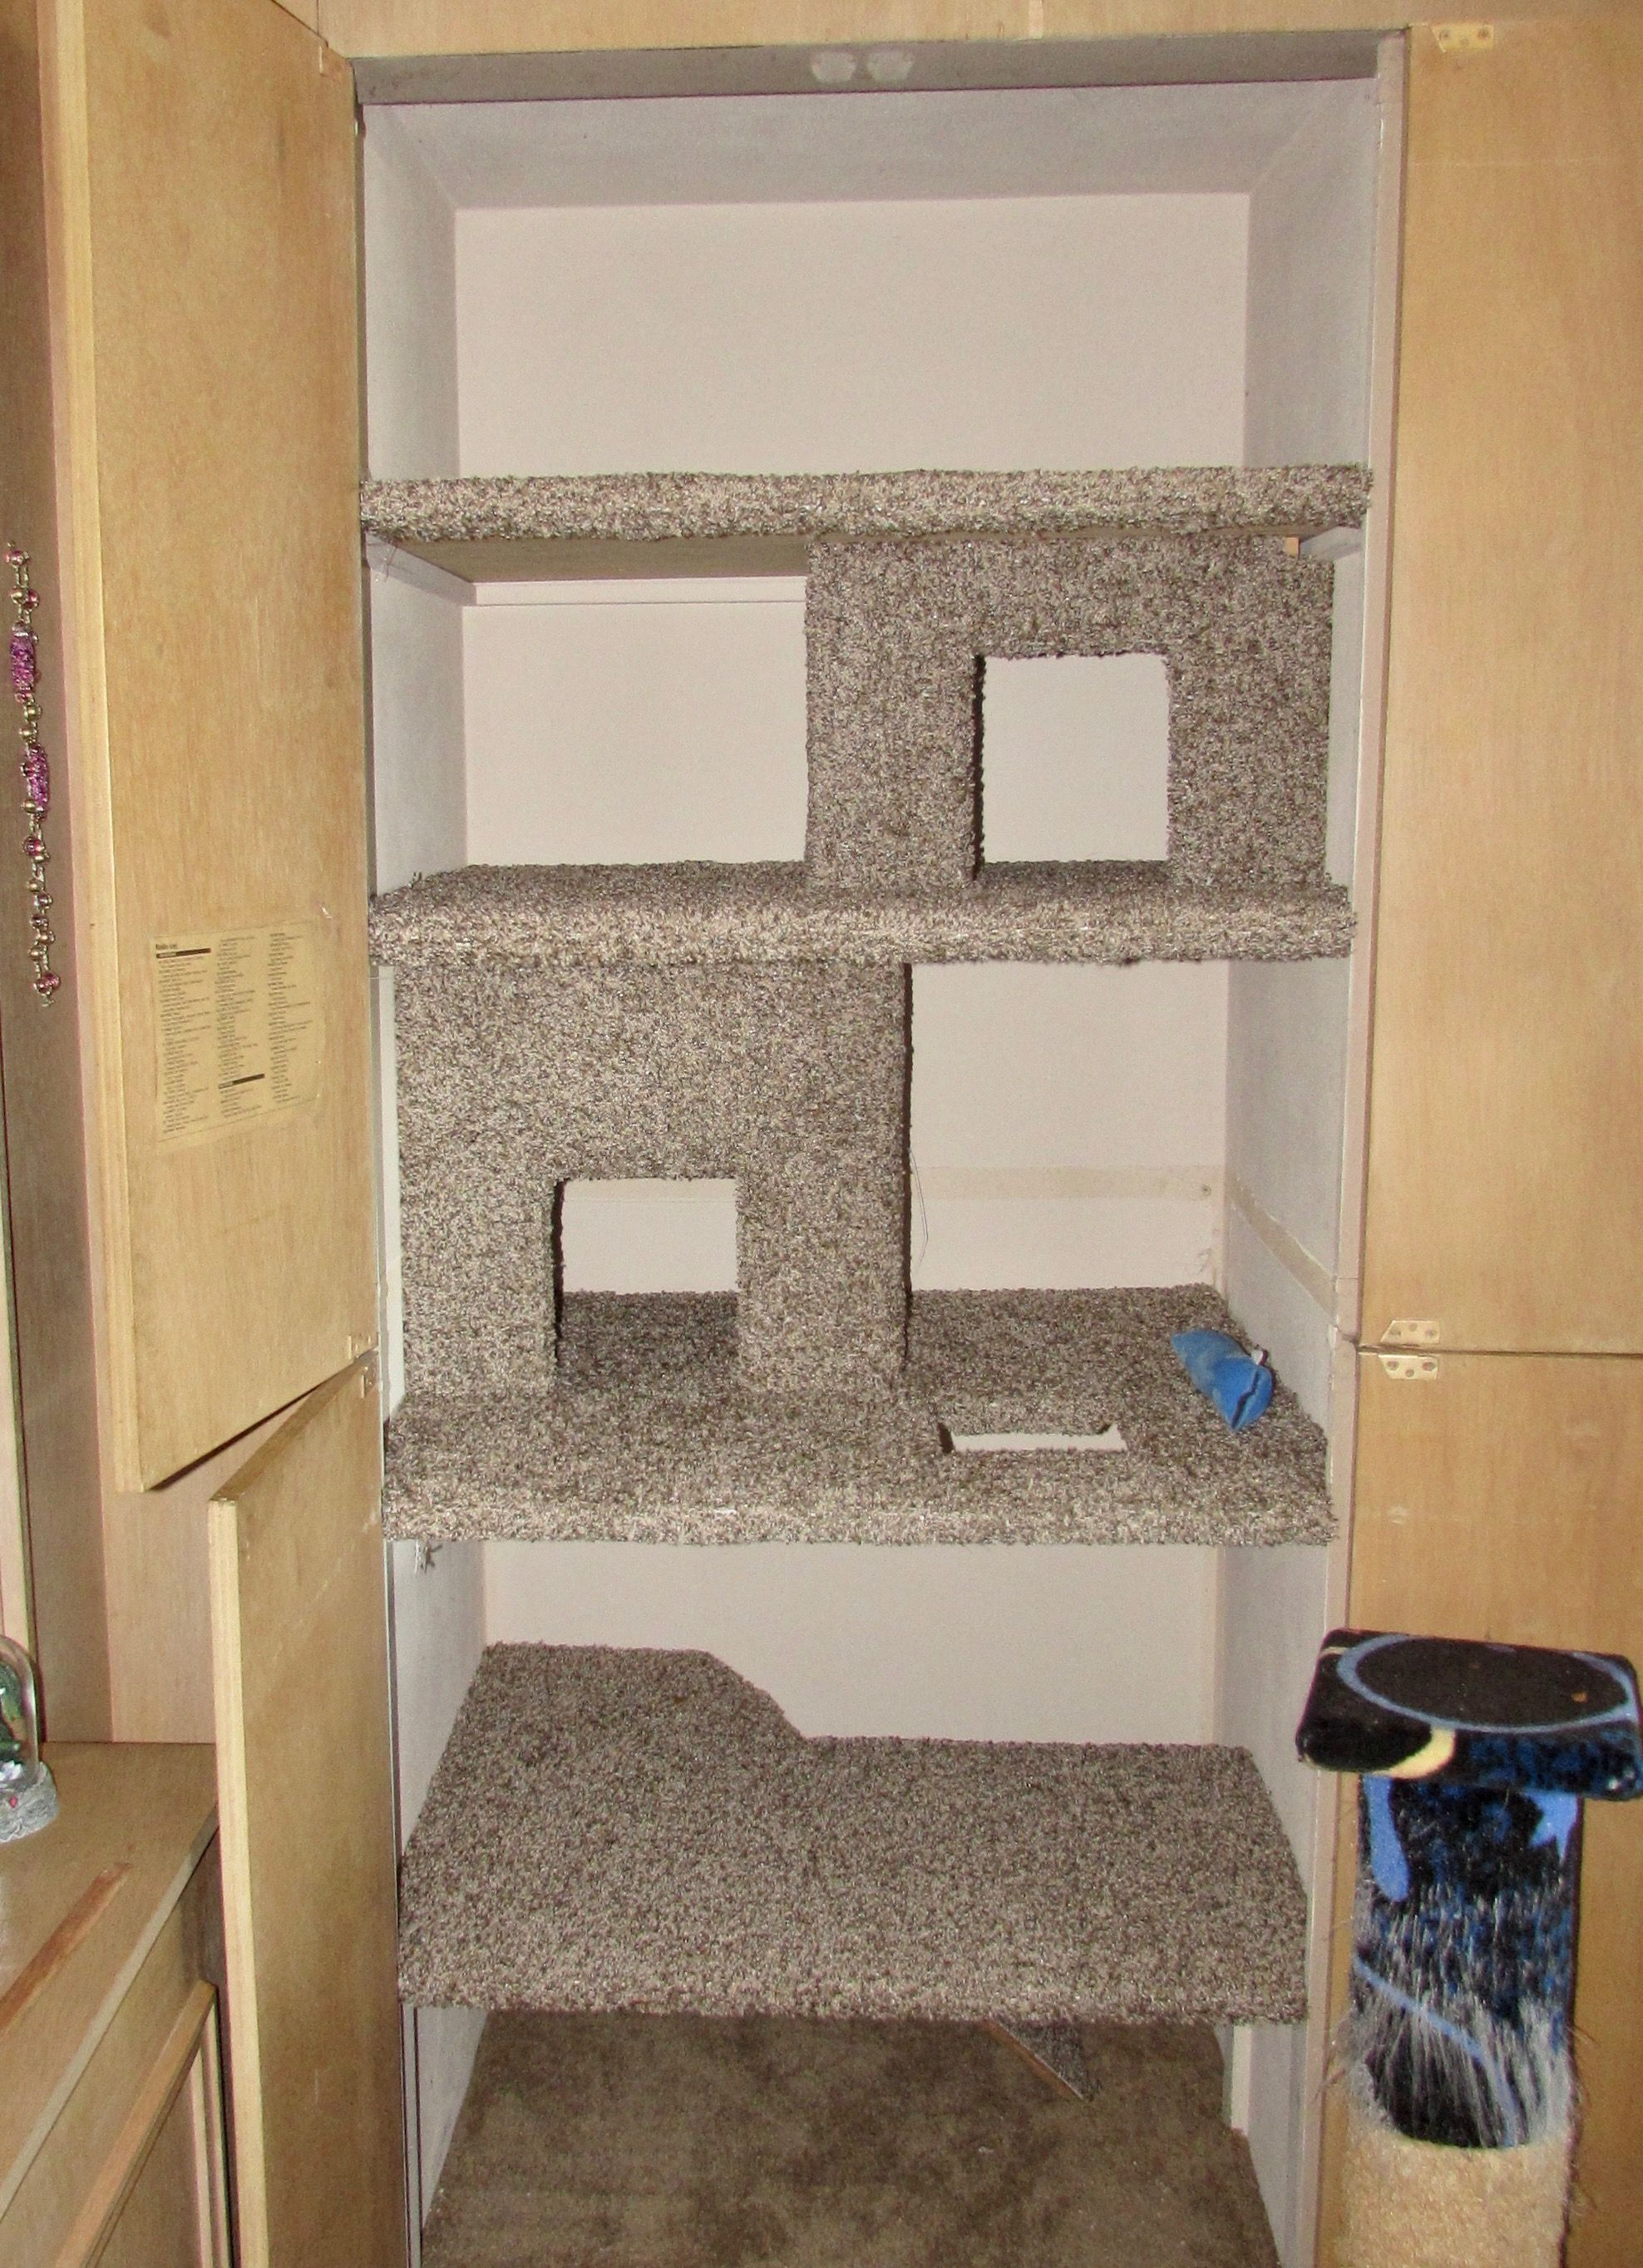 Converted Stereo Closet To Built In Cat Condo Top Two Levels Are